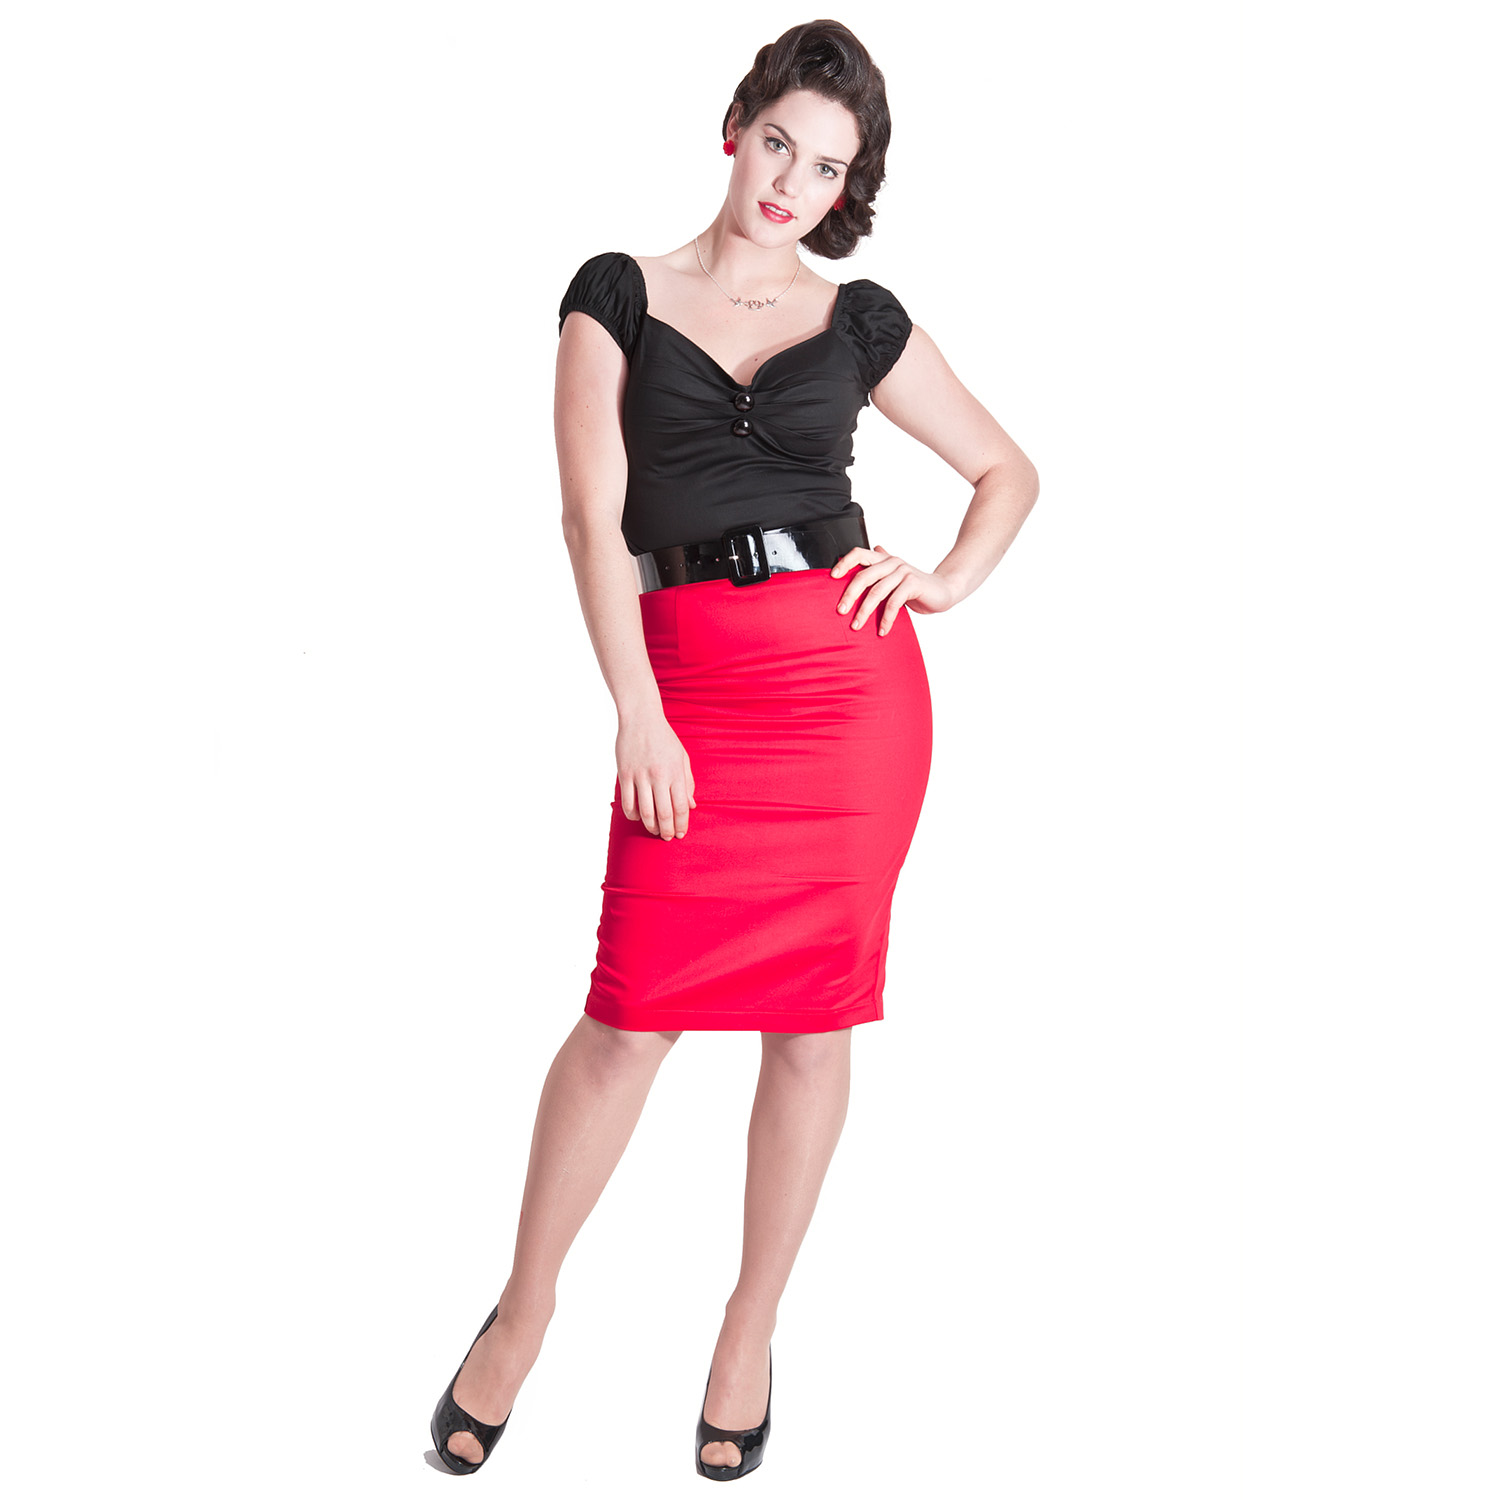 collectif betty lou vintage rockabilly pinup fitted formal